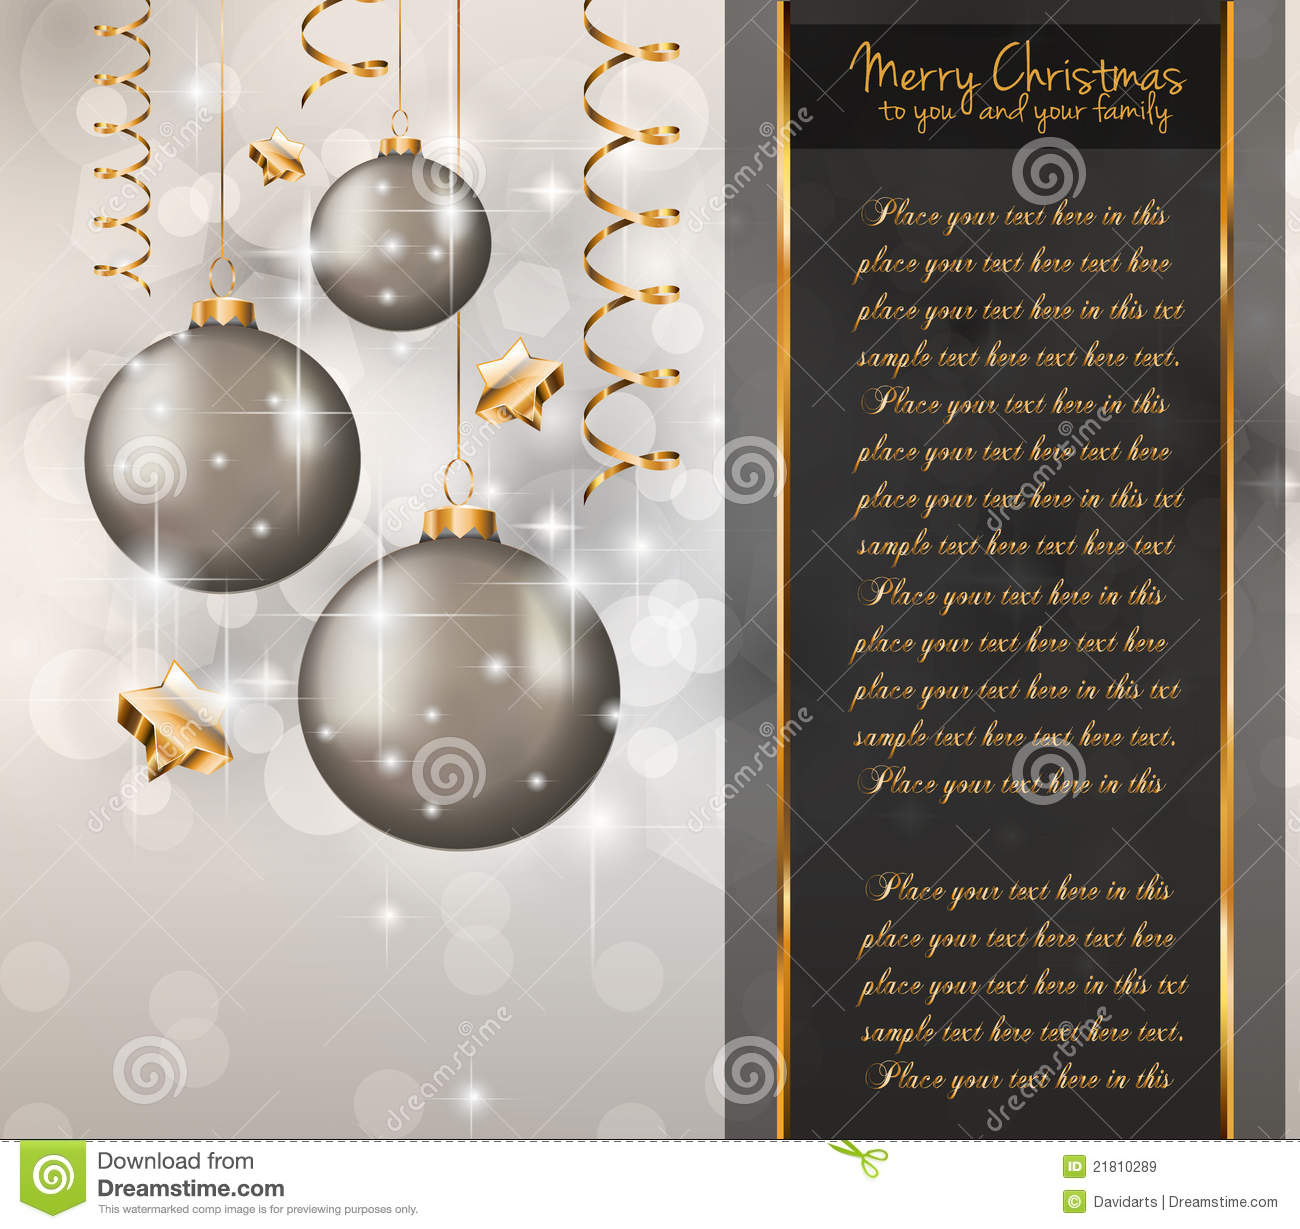 Elegant Classic Christmas Greetings Royalty Free Stock